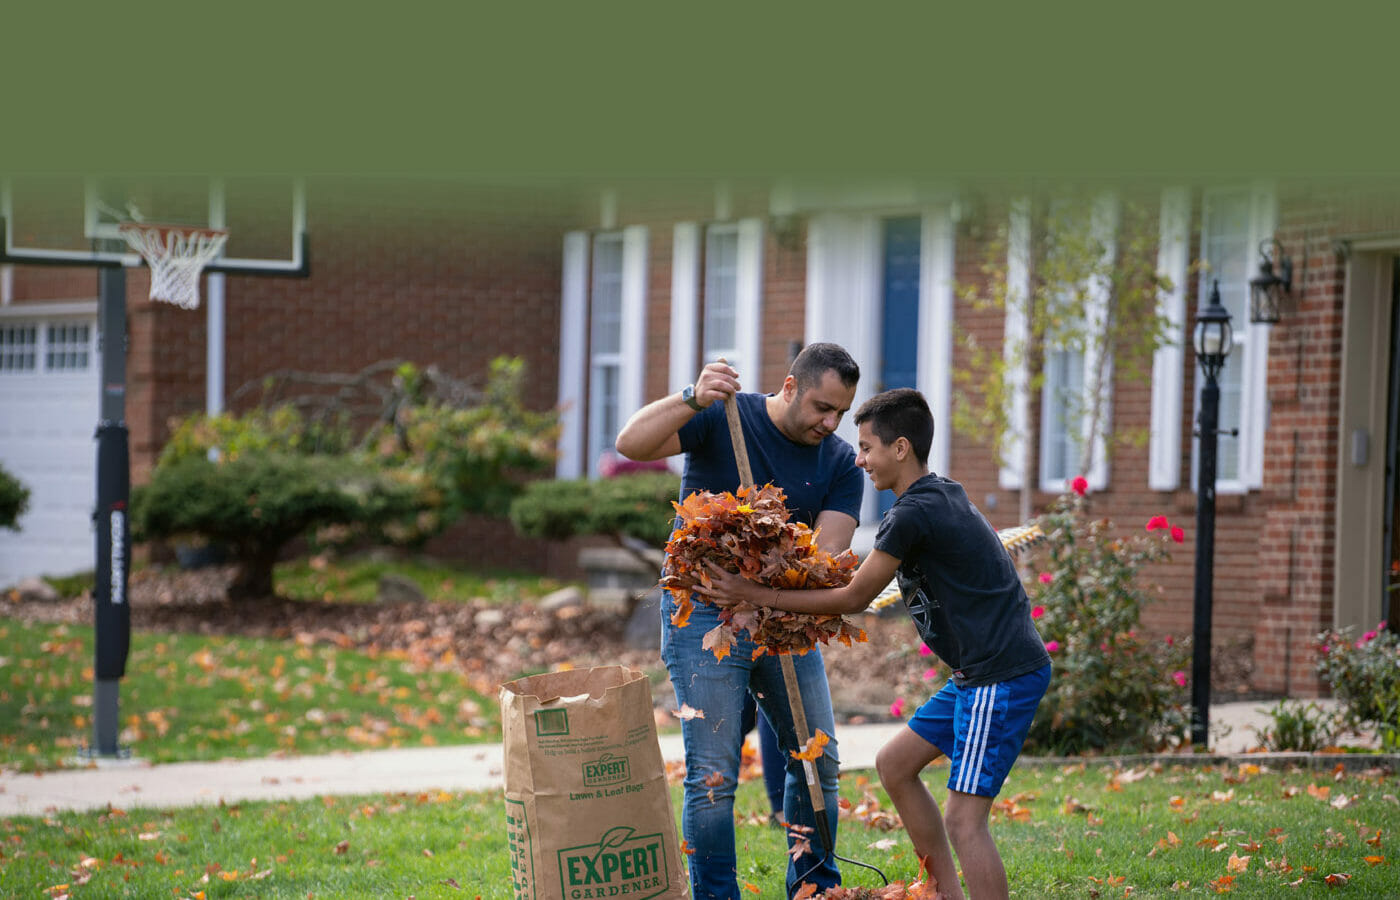 Father and son raking leaves and putting them in bag